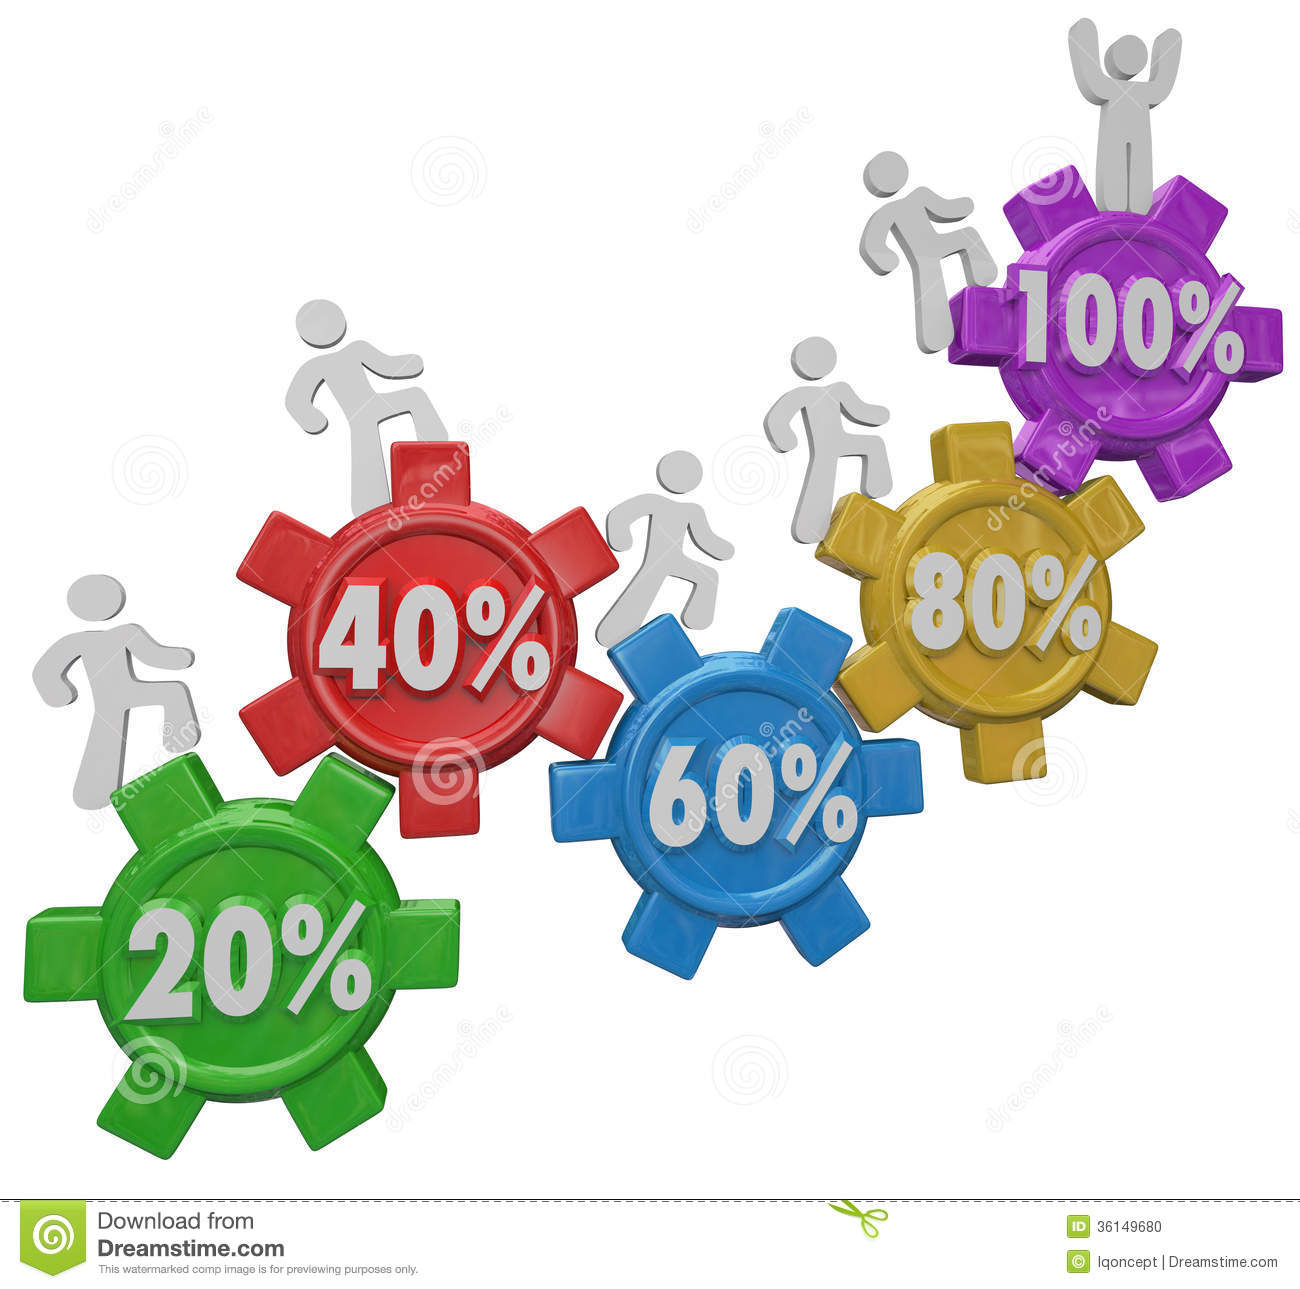 download interpersonal psychotherapy a clinicians guide